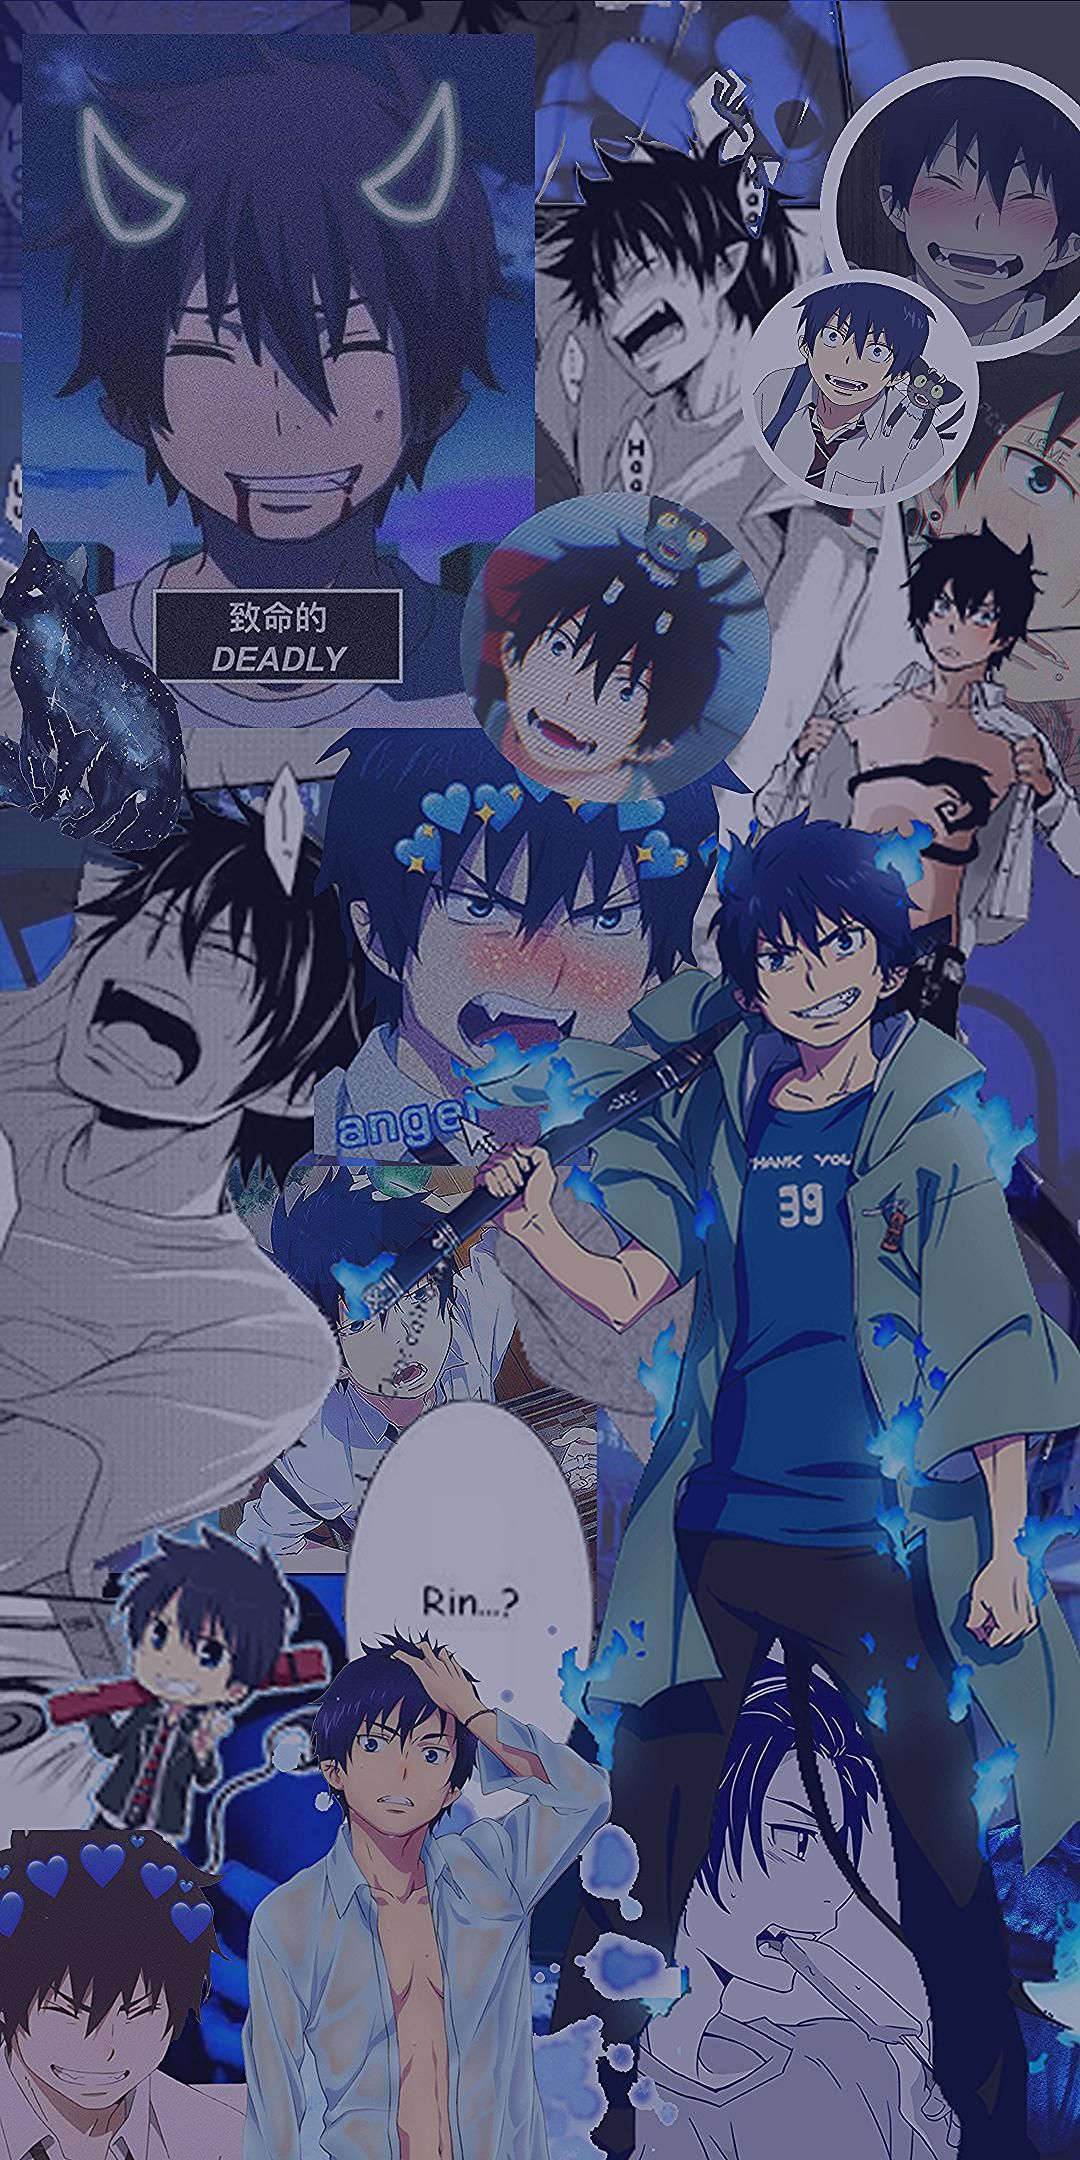 Anime Edits Hintergrundbilder In 2020 Kawaii Anime Blue Exorcist Anime Aesthetic Anime